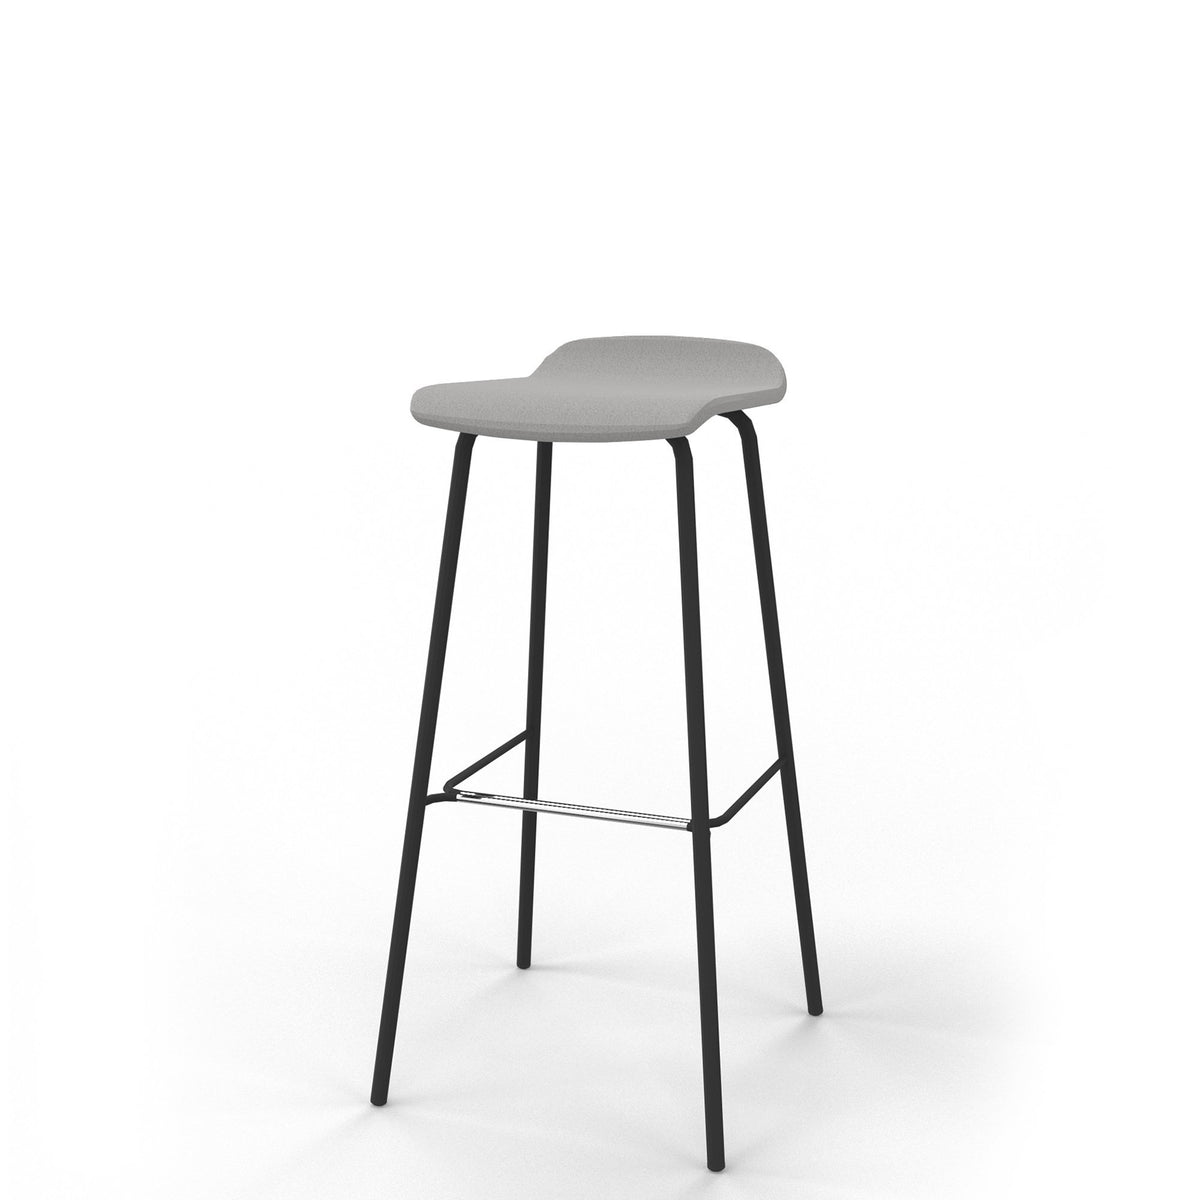 Edsbyn Office Upholstered Stool 800mmH Silver